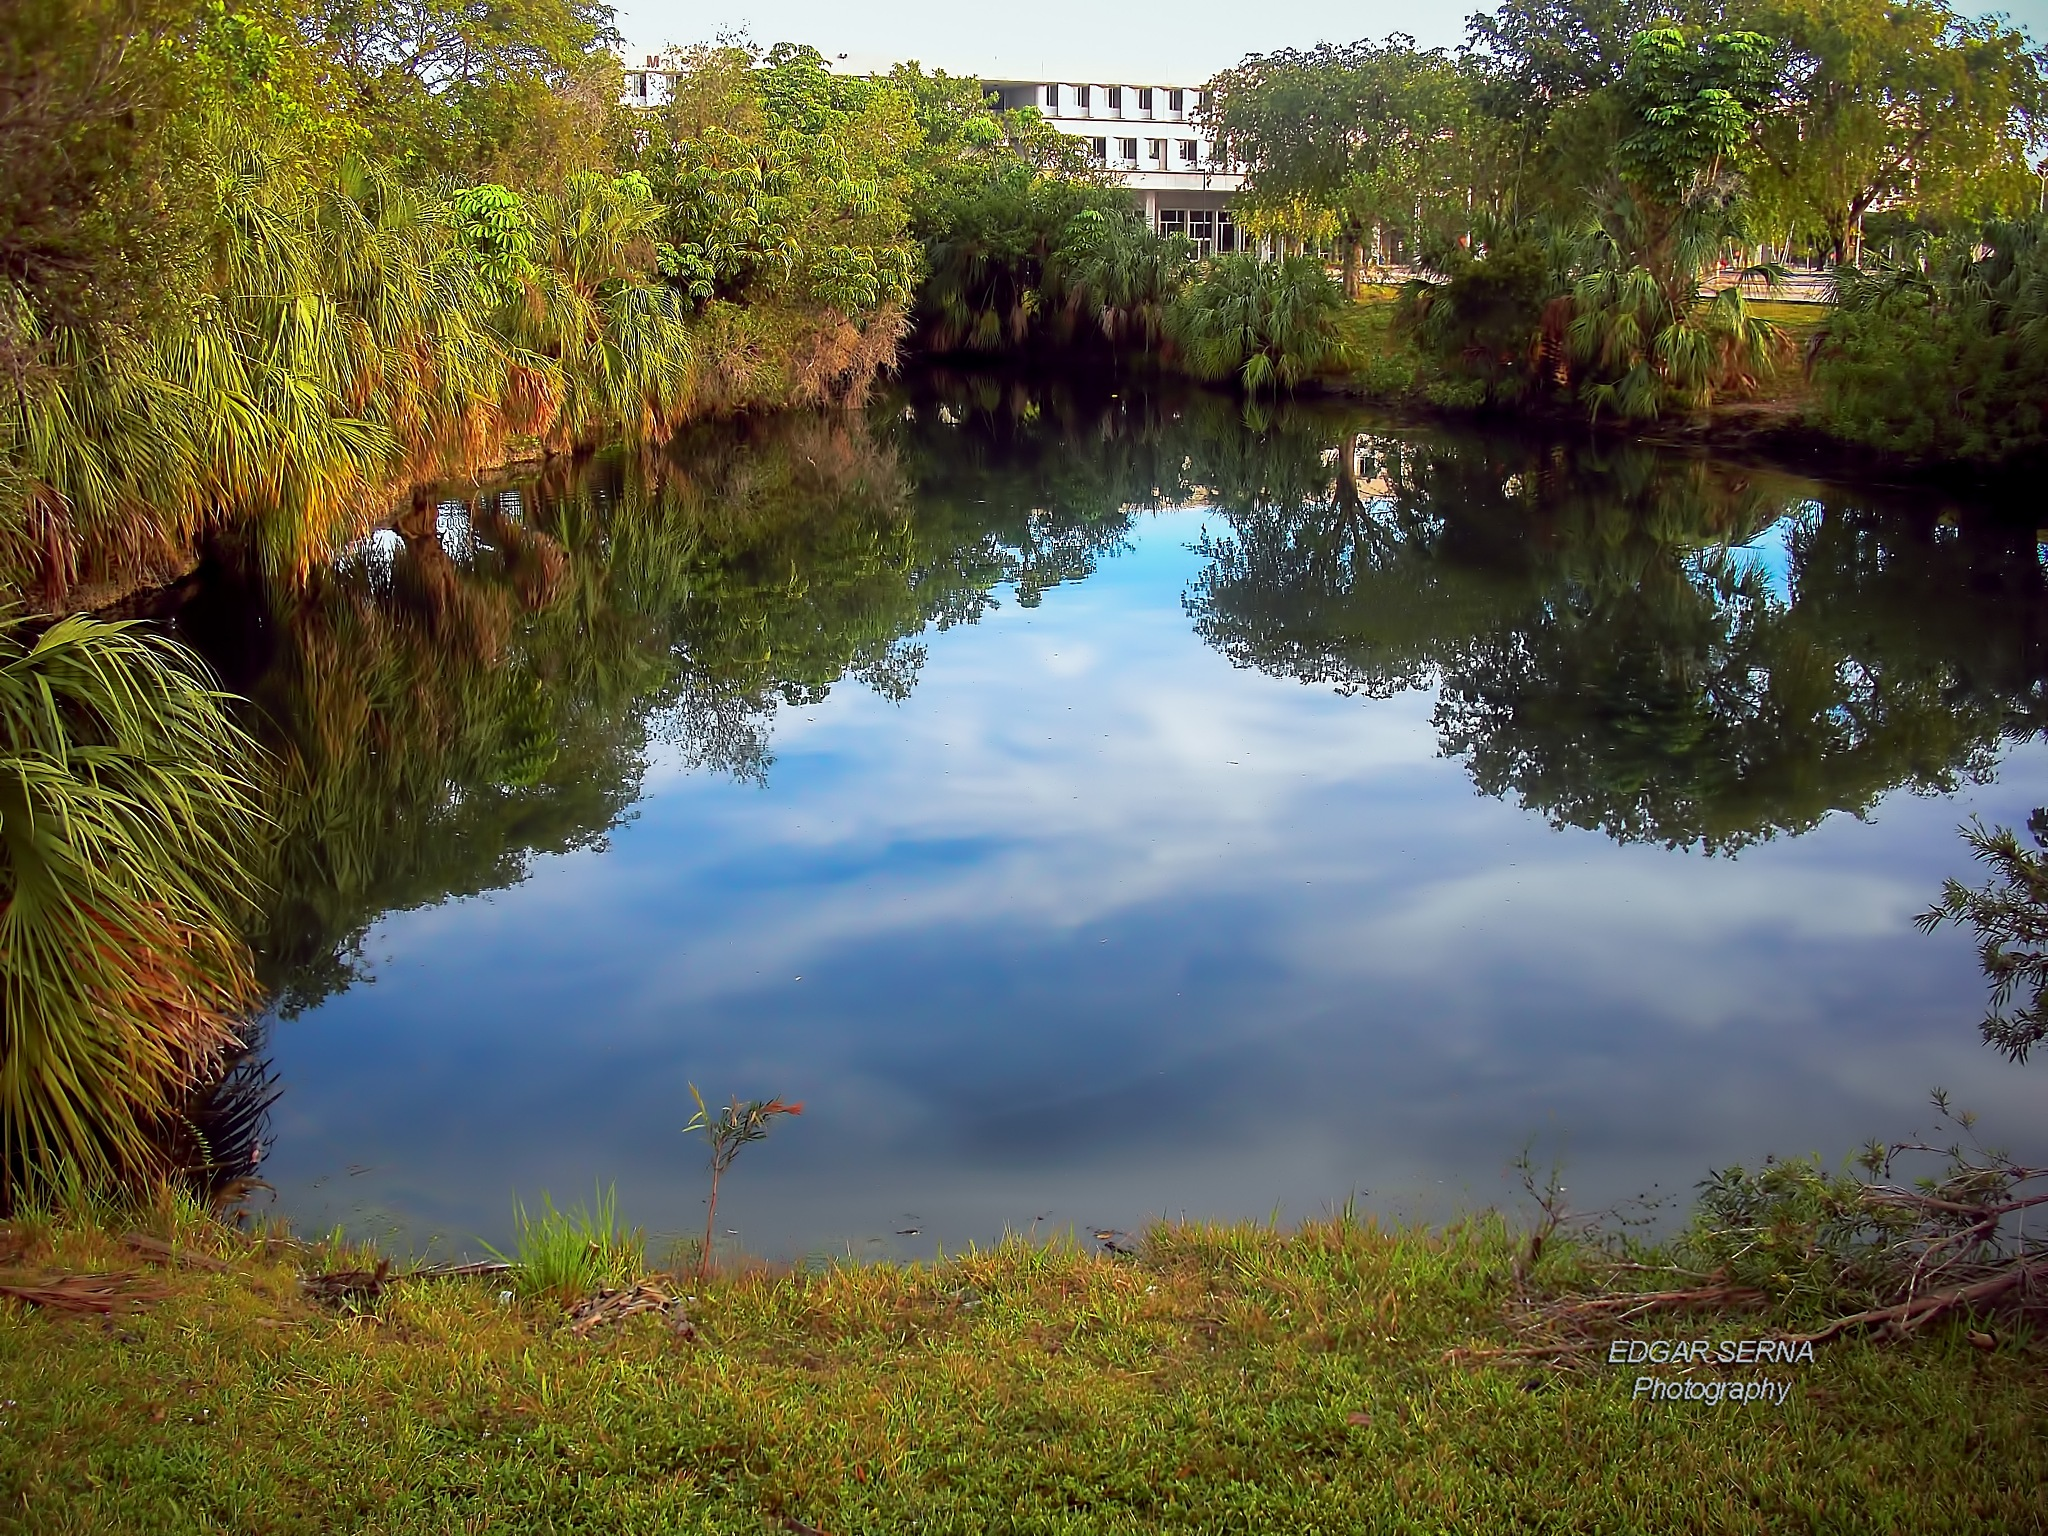 Little lake in the campus by Edgar Serna